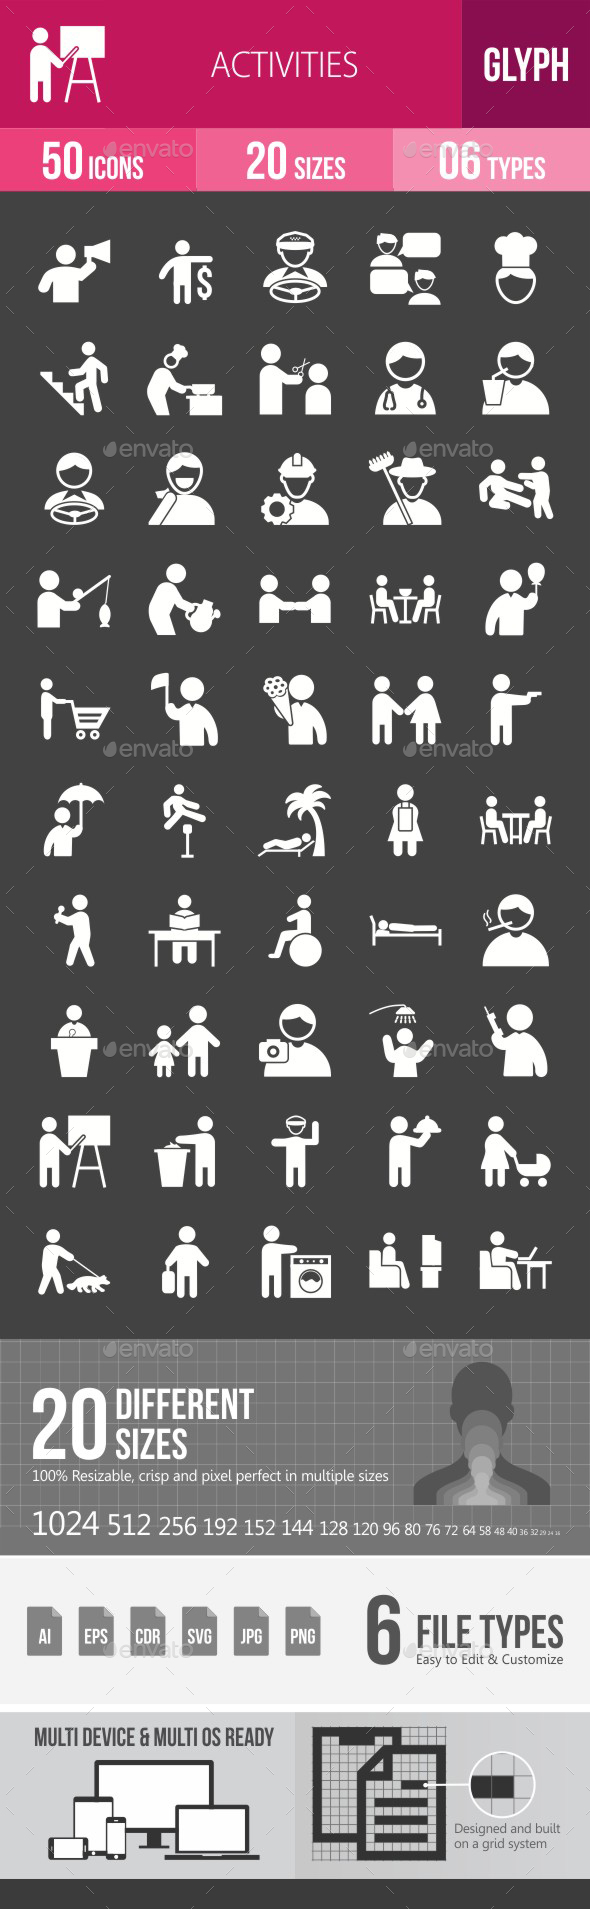 Activities Glyph Inverted Icons - Icons